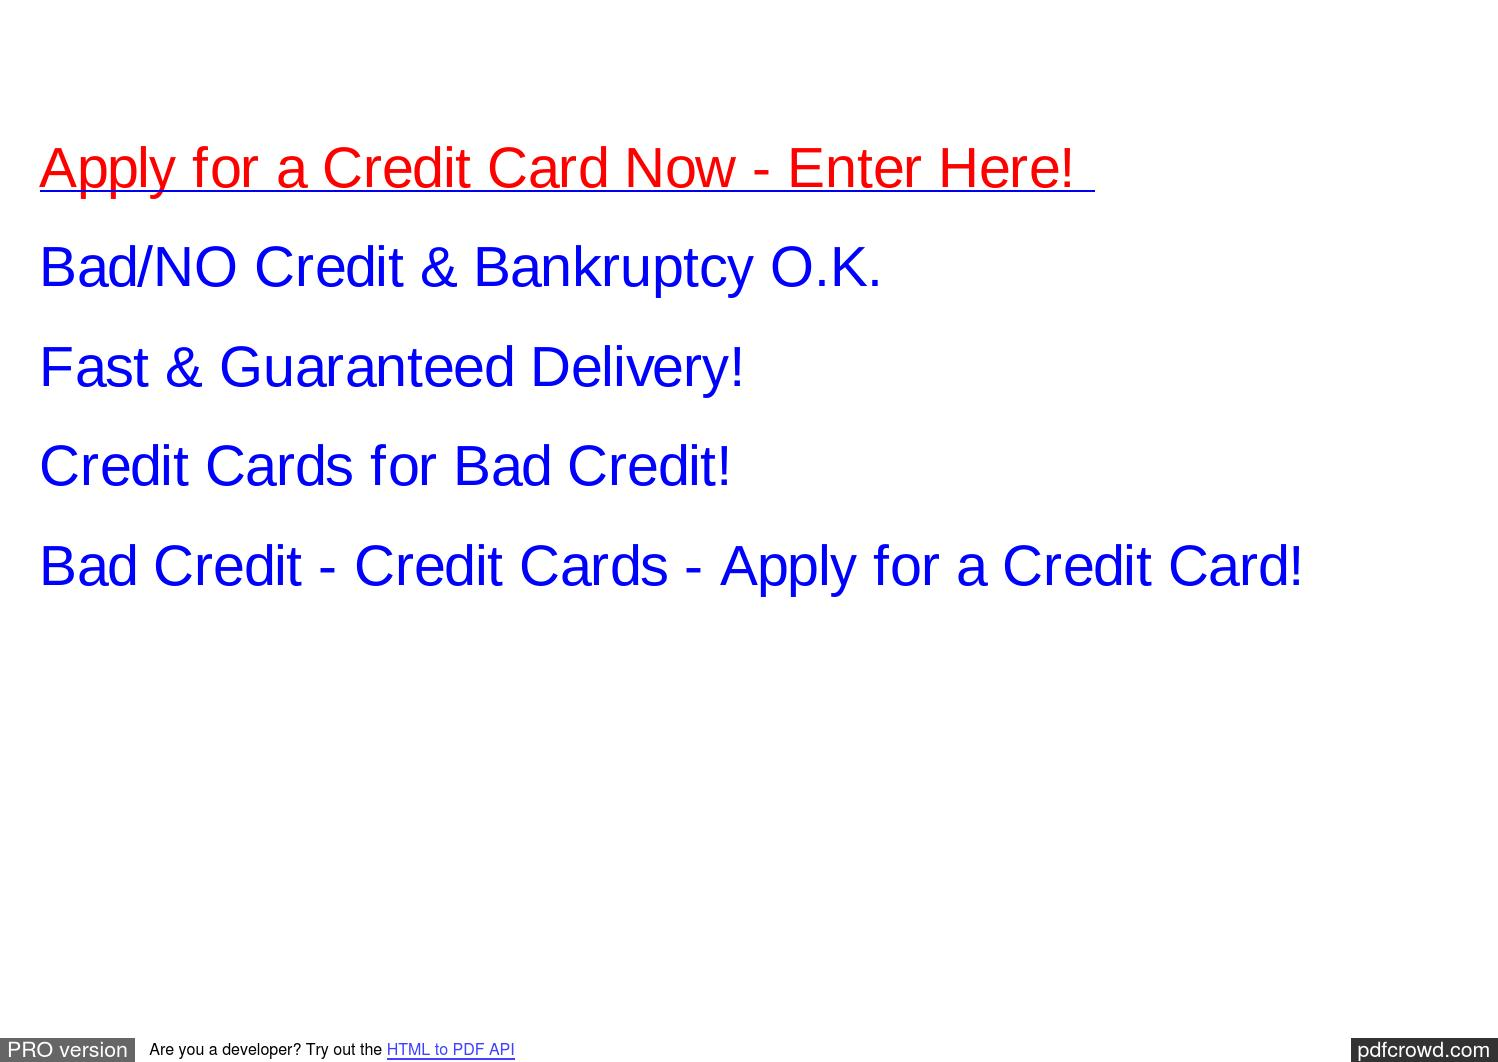 Quiktrip Credit Card Application Online *** How Long Do Online ...